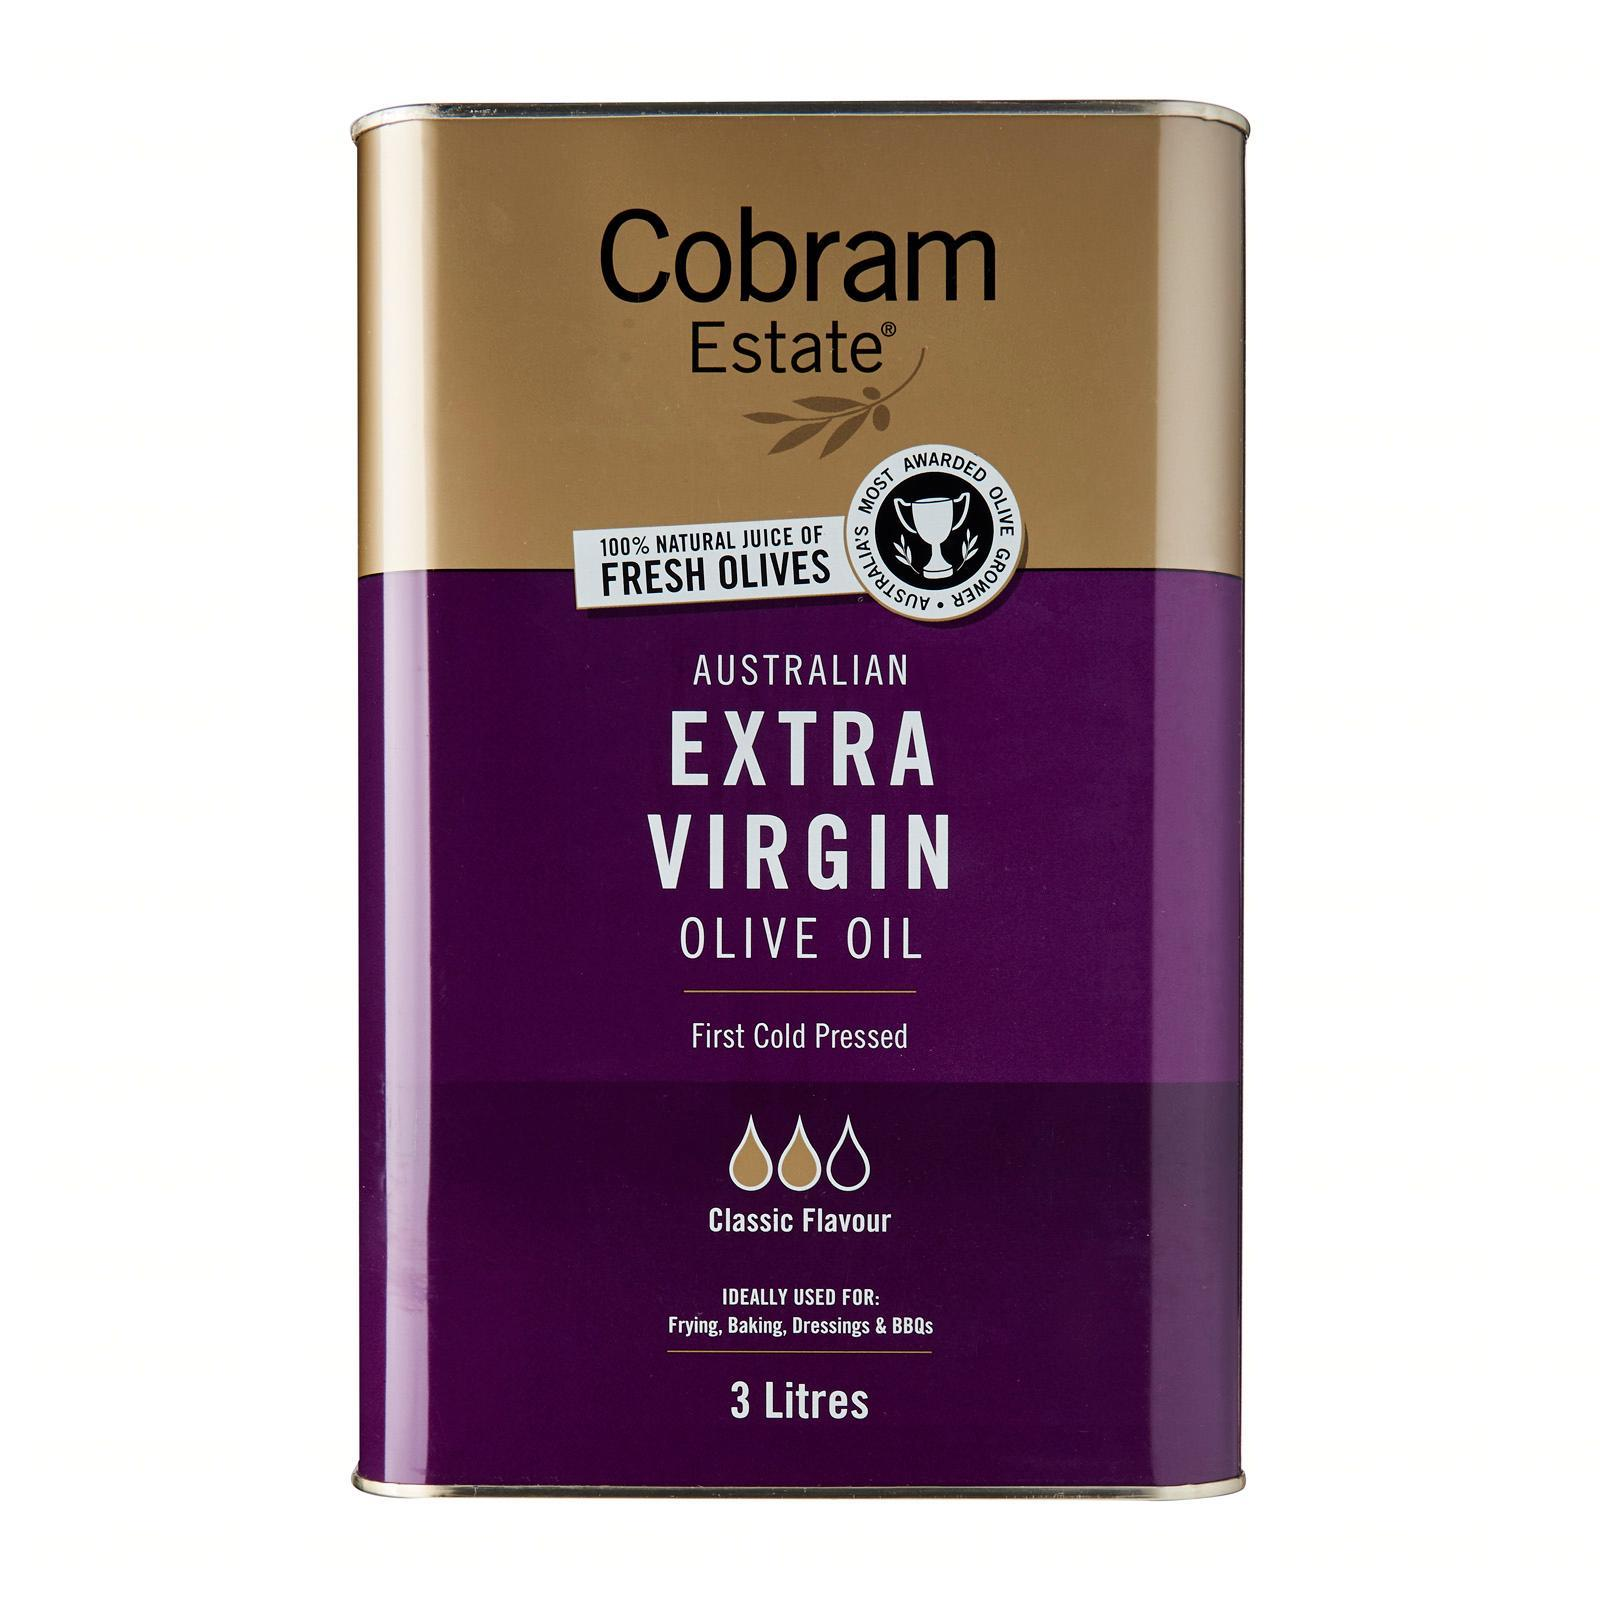 Cobram Estate Australian Classic Extra Virgin Olive Oil - 3 L